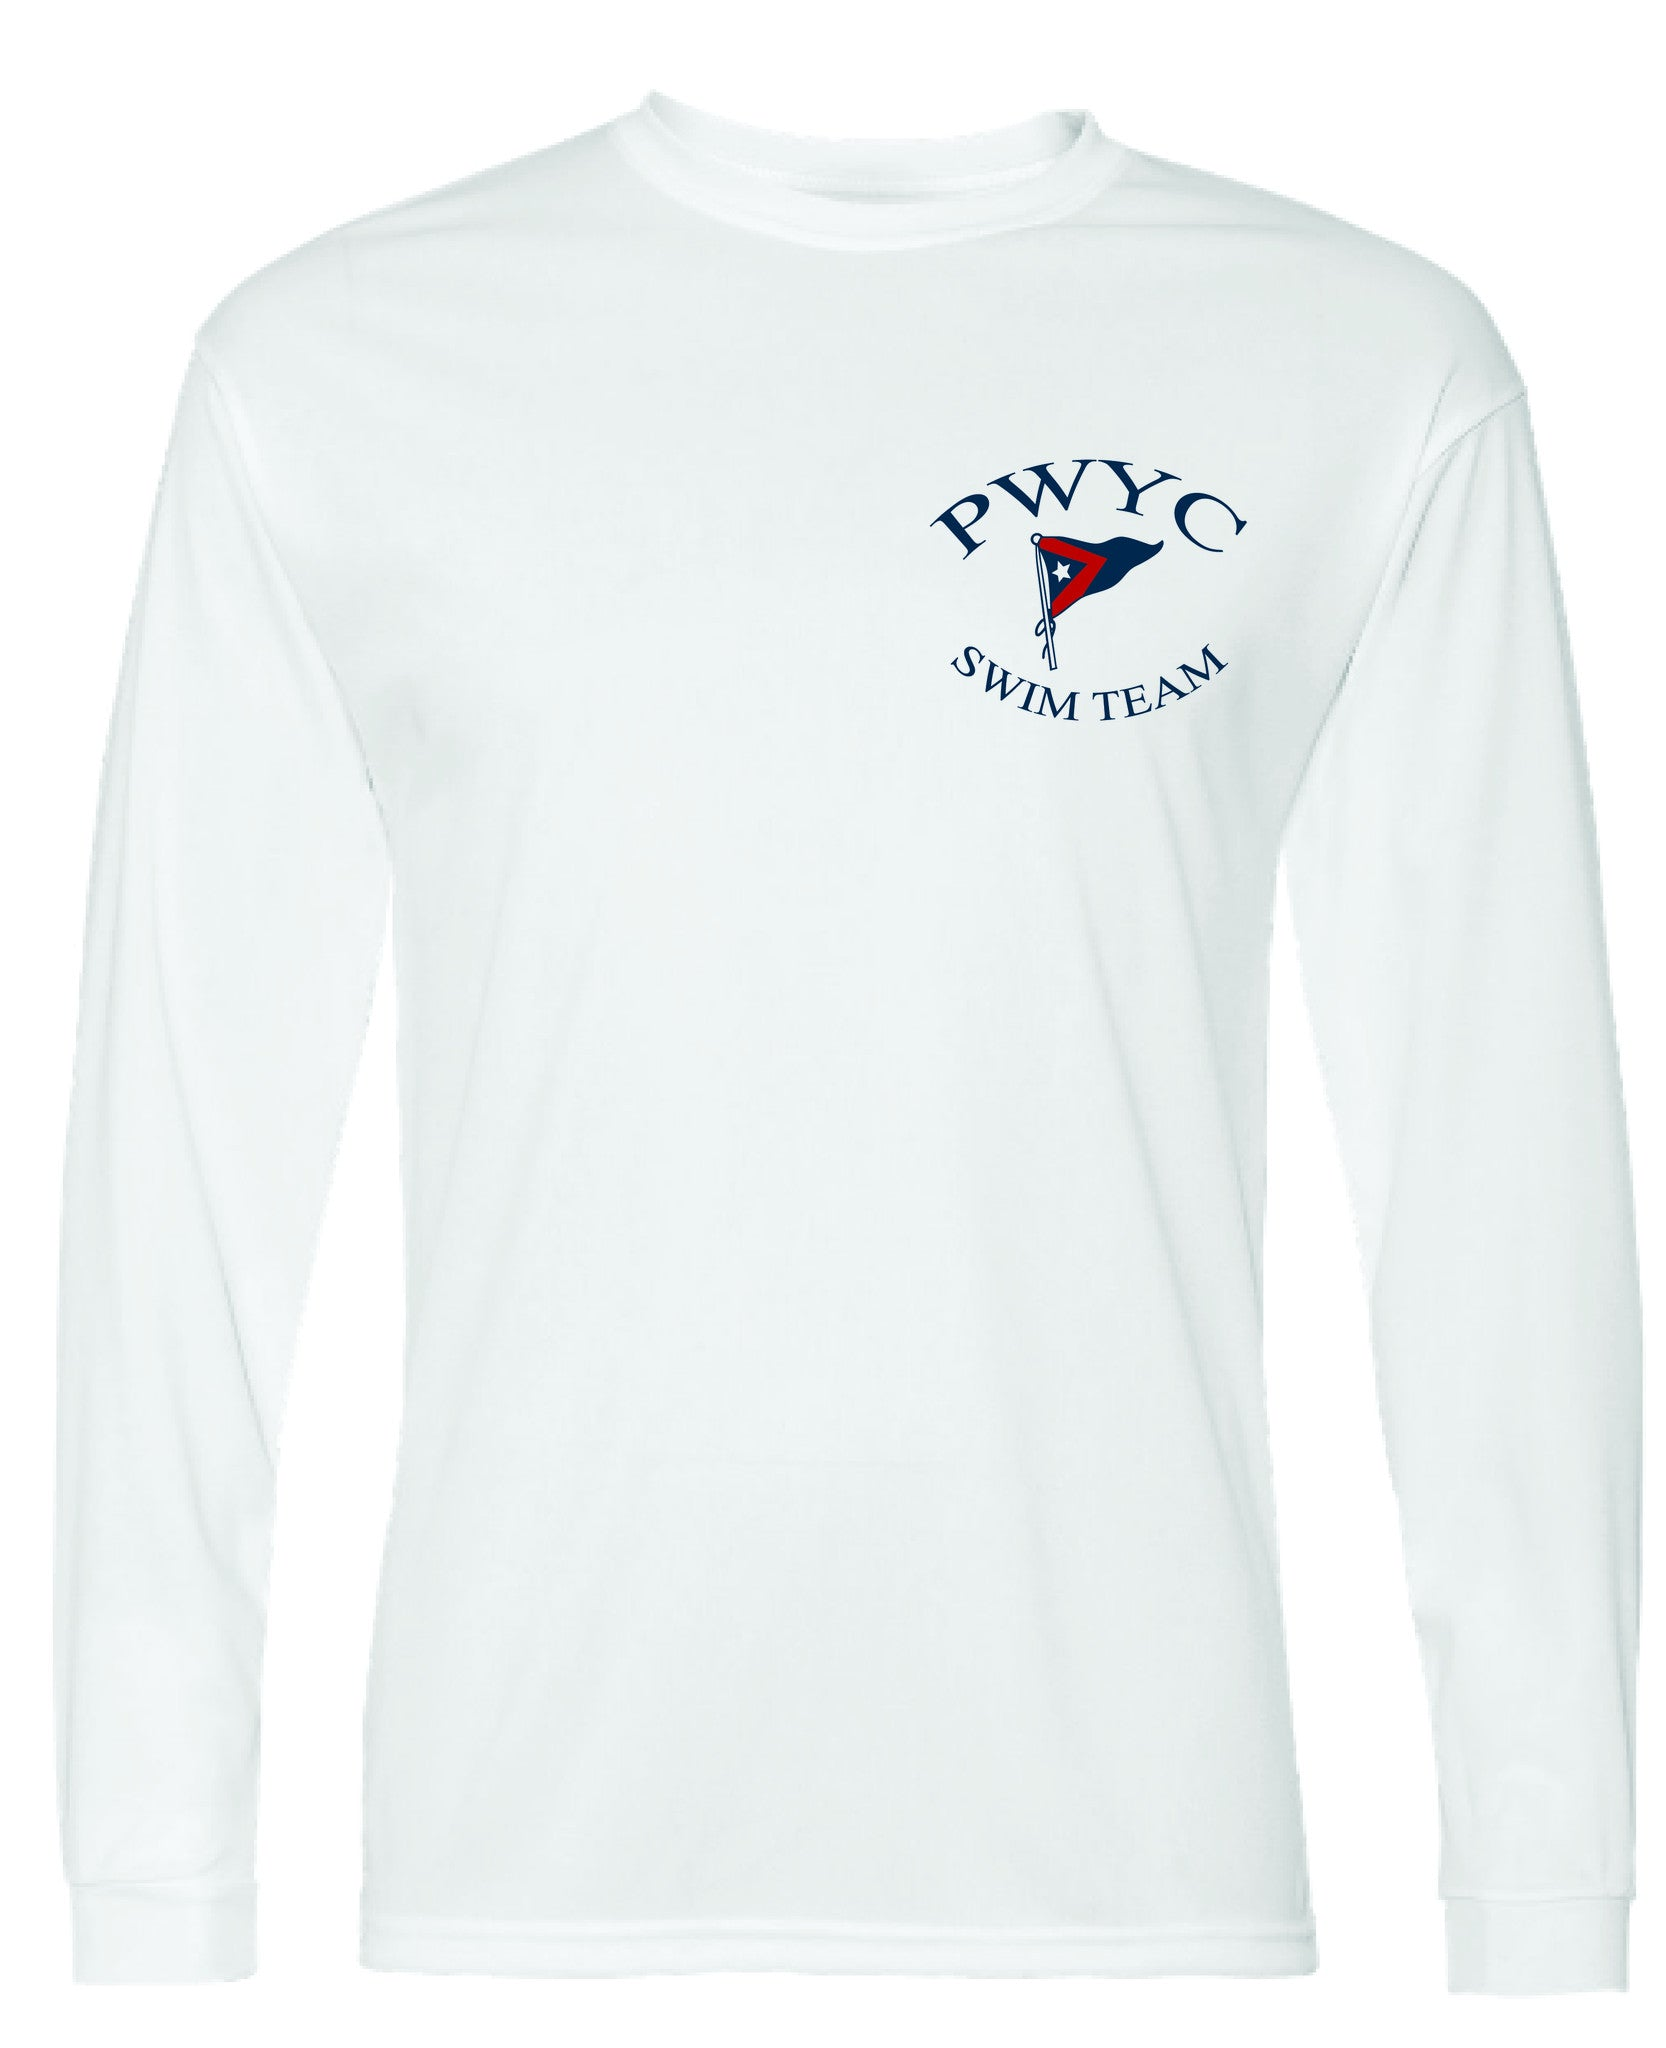 PWYC Long Sleeve Performance Tee